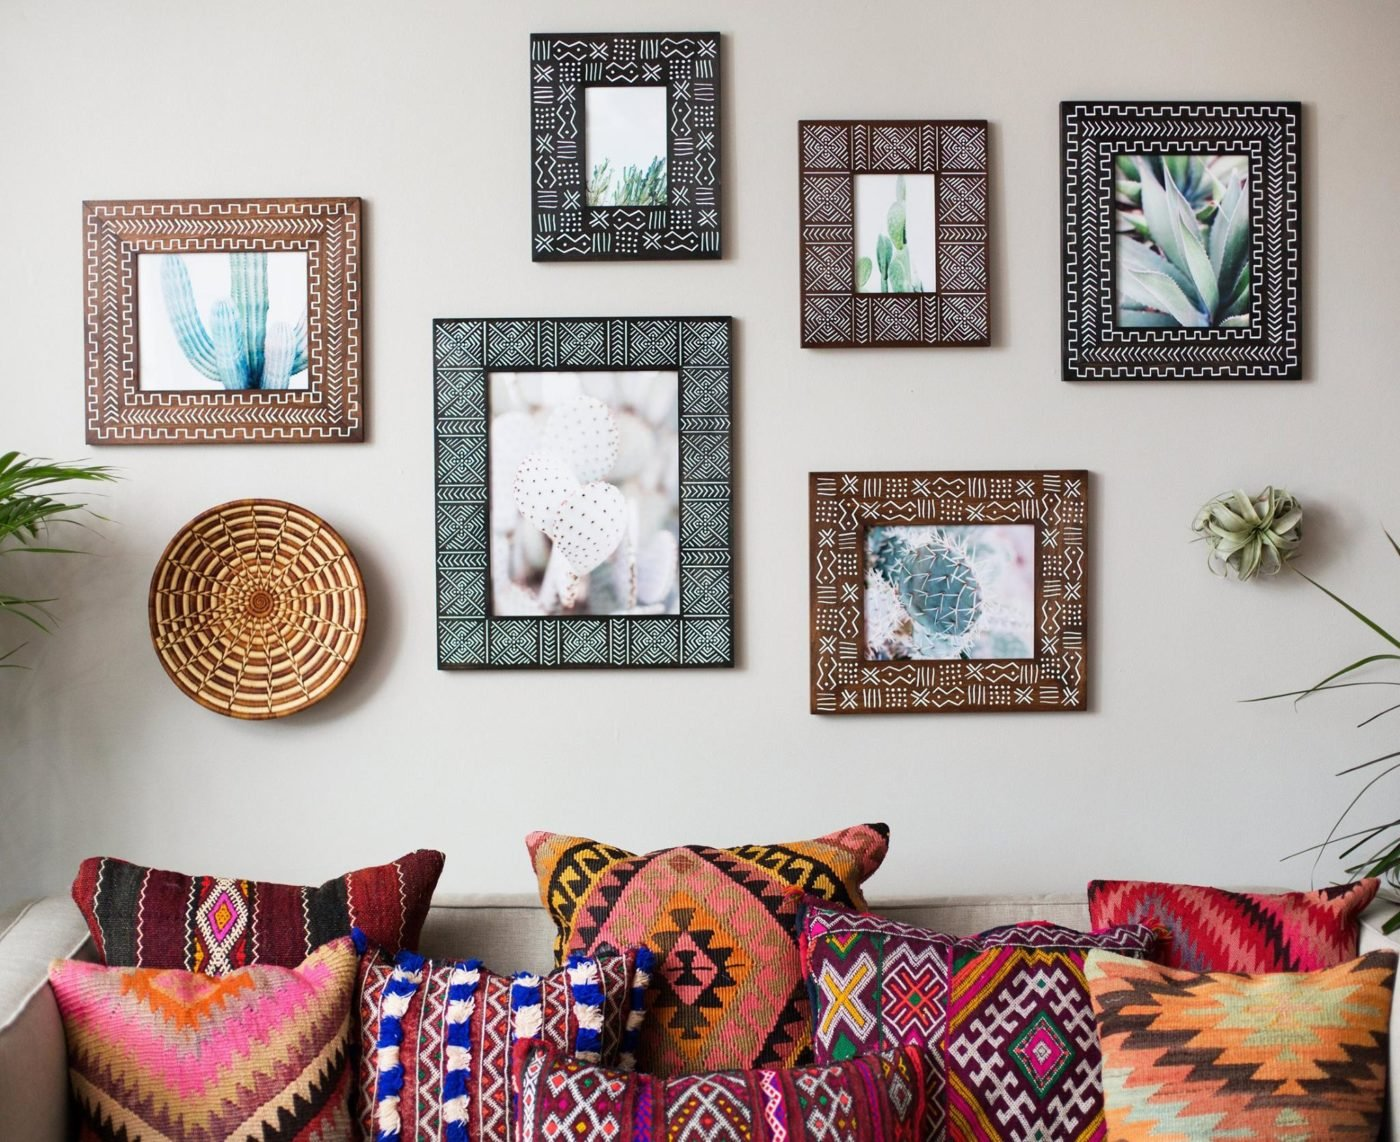 Alyse - Mali Frame Collection and Pillows